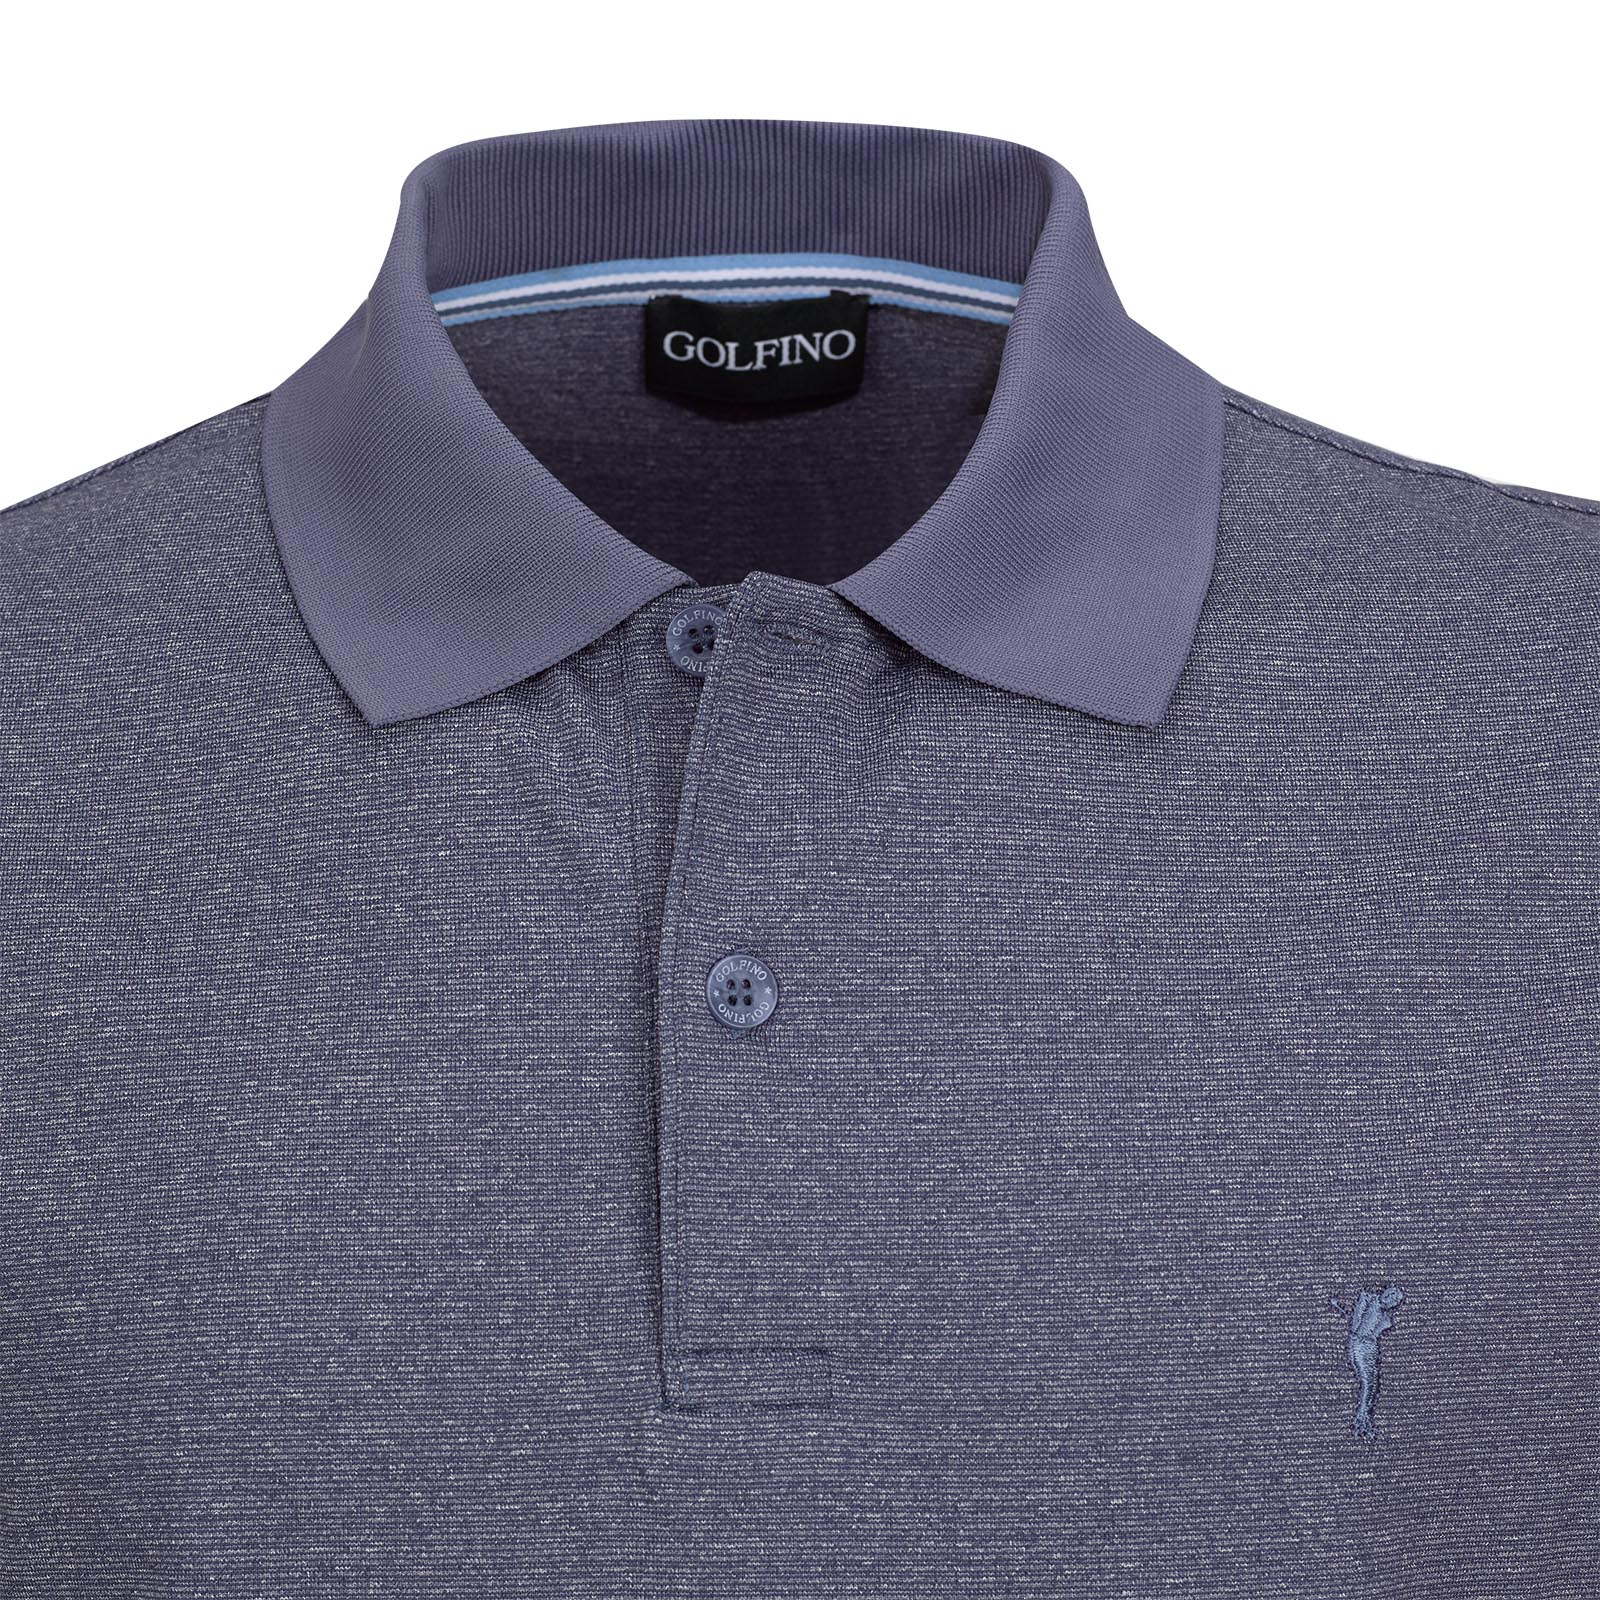 Men's Resort Wear golf polo with moisture management